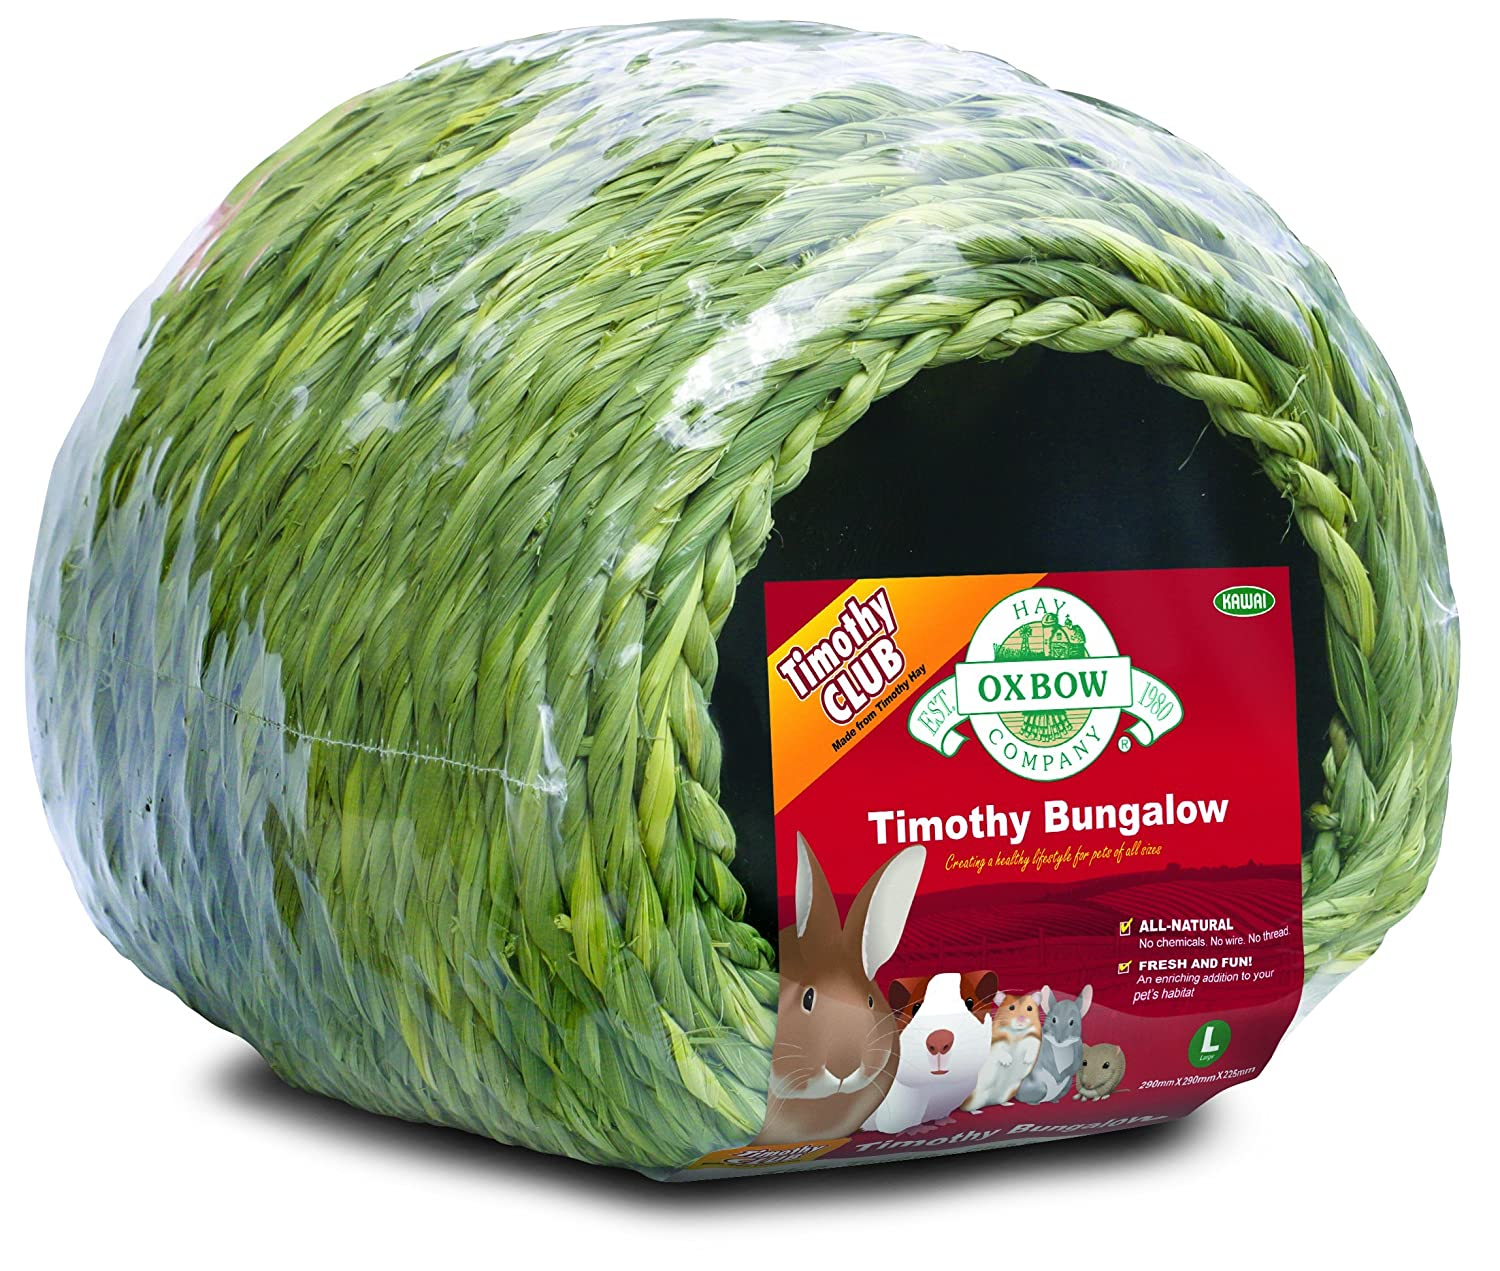 OXBOW PET PRODUCTS 448153 Timothy Club Bungalow for Pets, Large